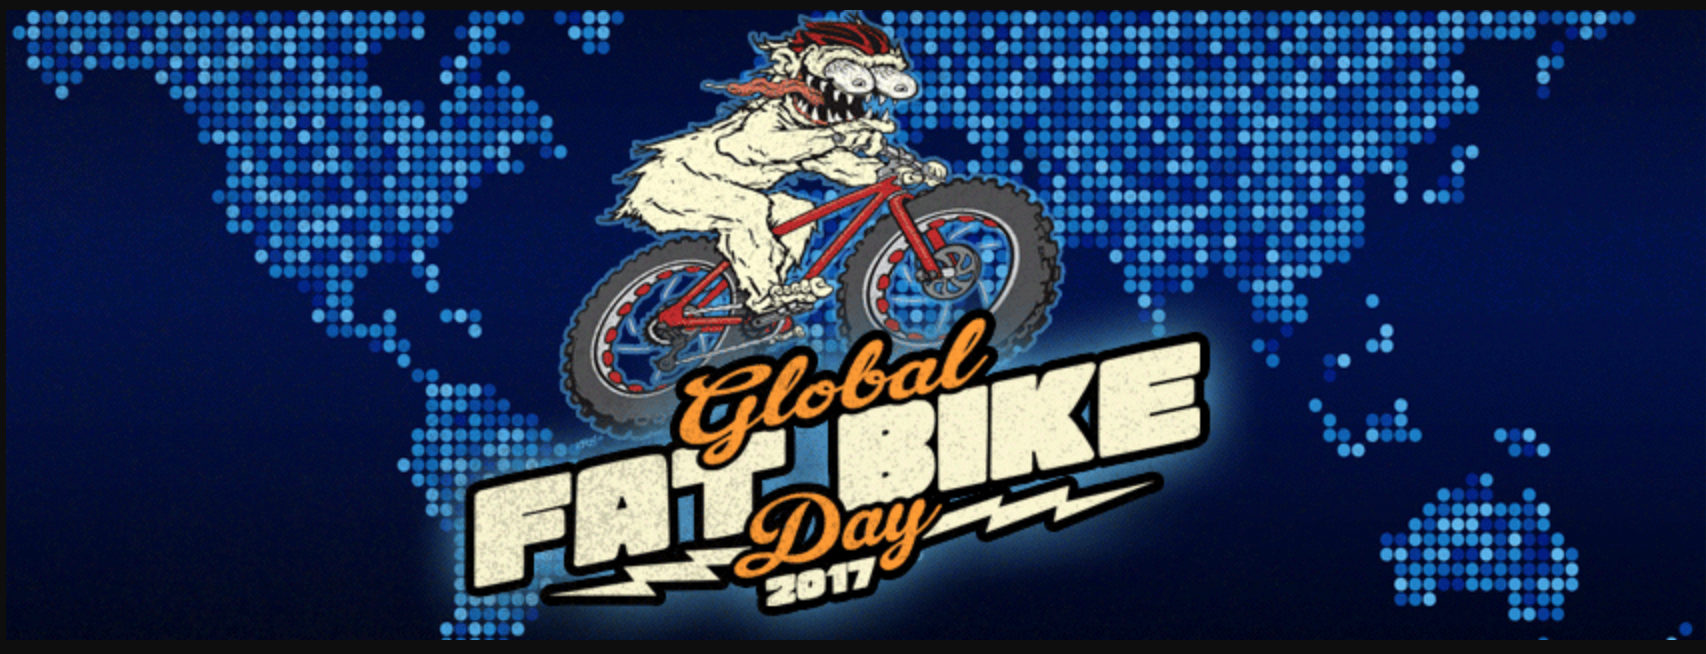 Fernie Global Fatbike Day